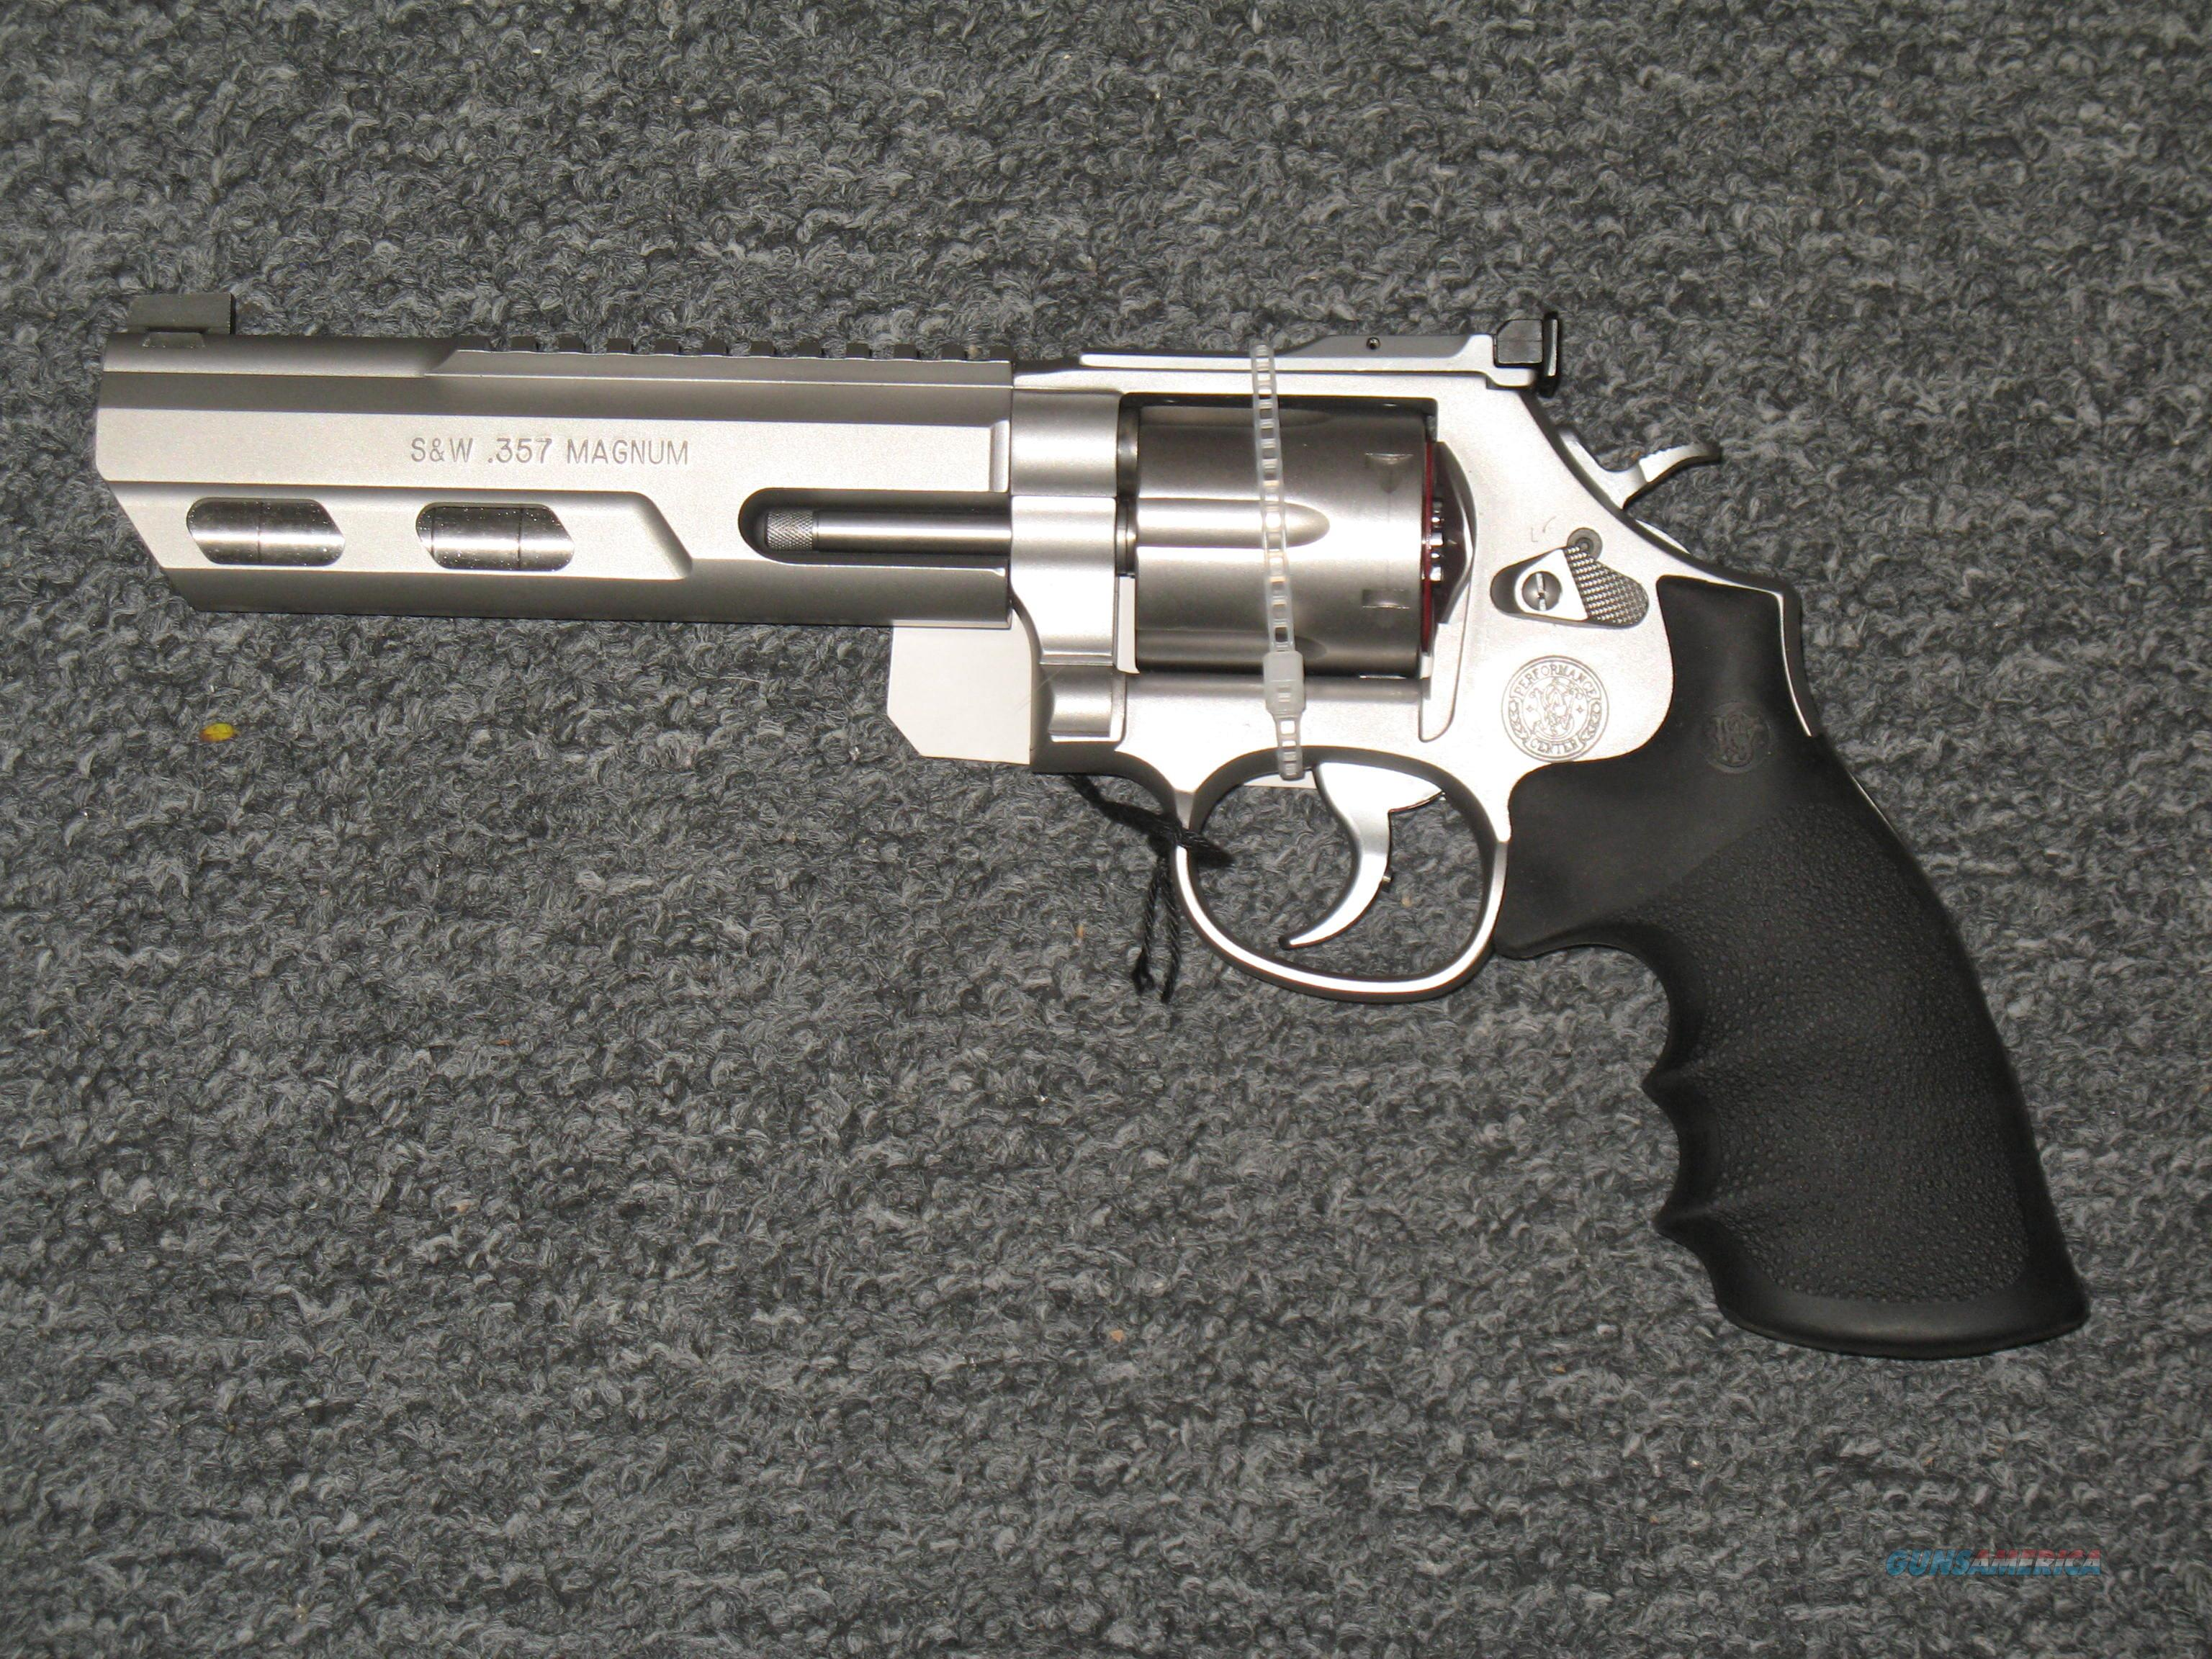 Smith & Wesson 686-6 Competitor (Performance Center) (170319)  Guns > Pistols > Smith & Wesson Revolvers > Full Frame Revolver